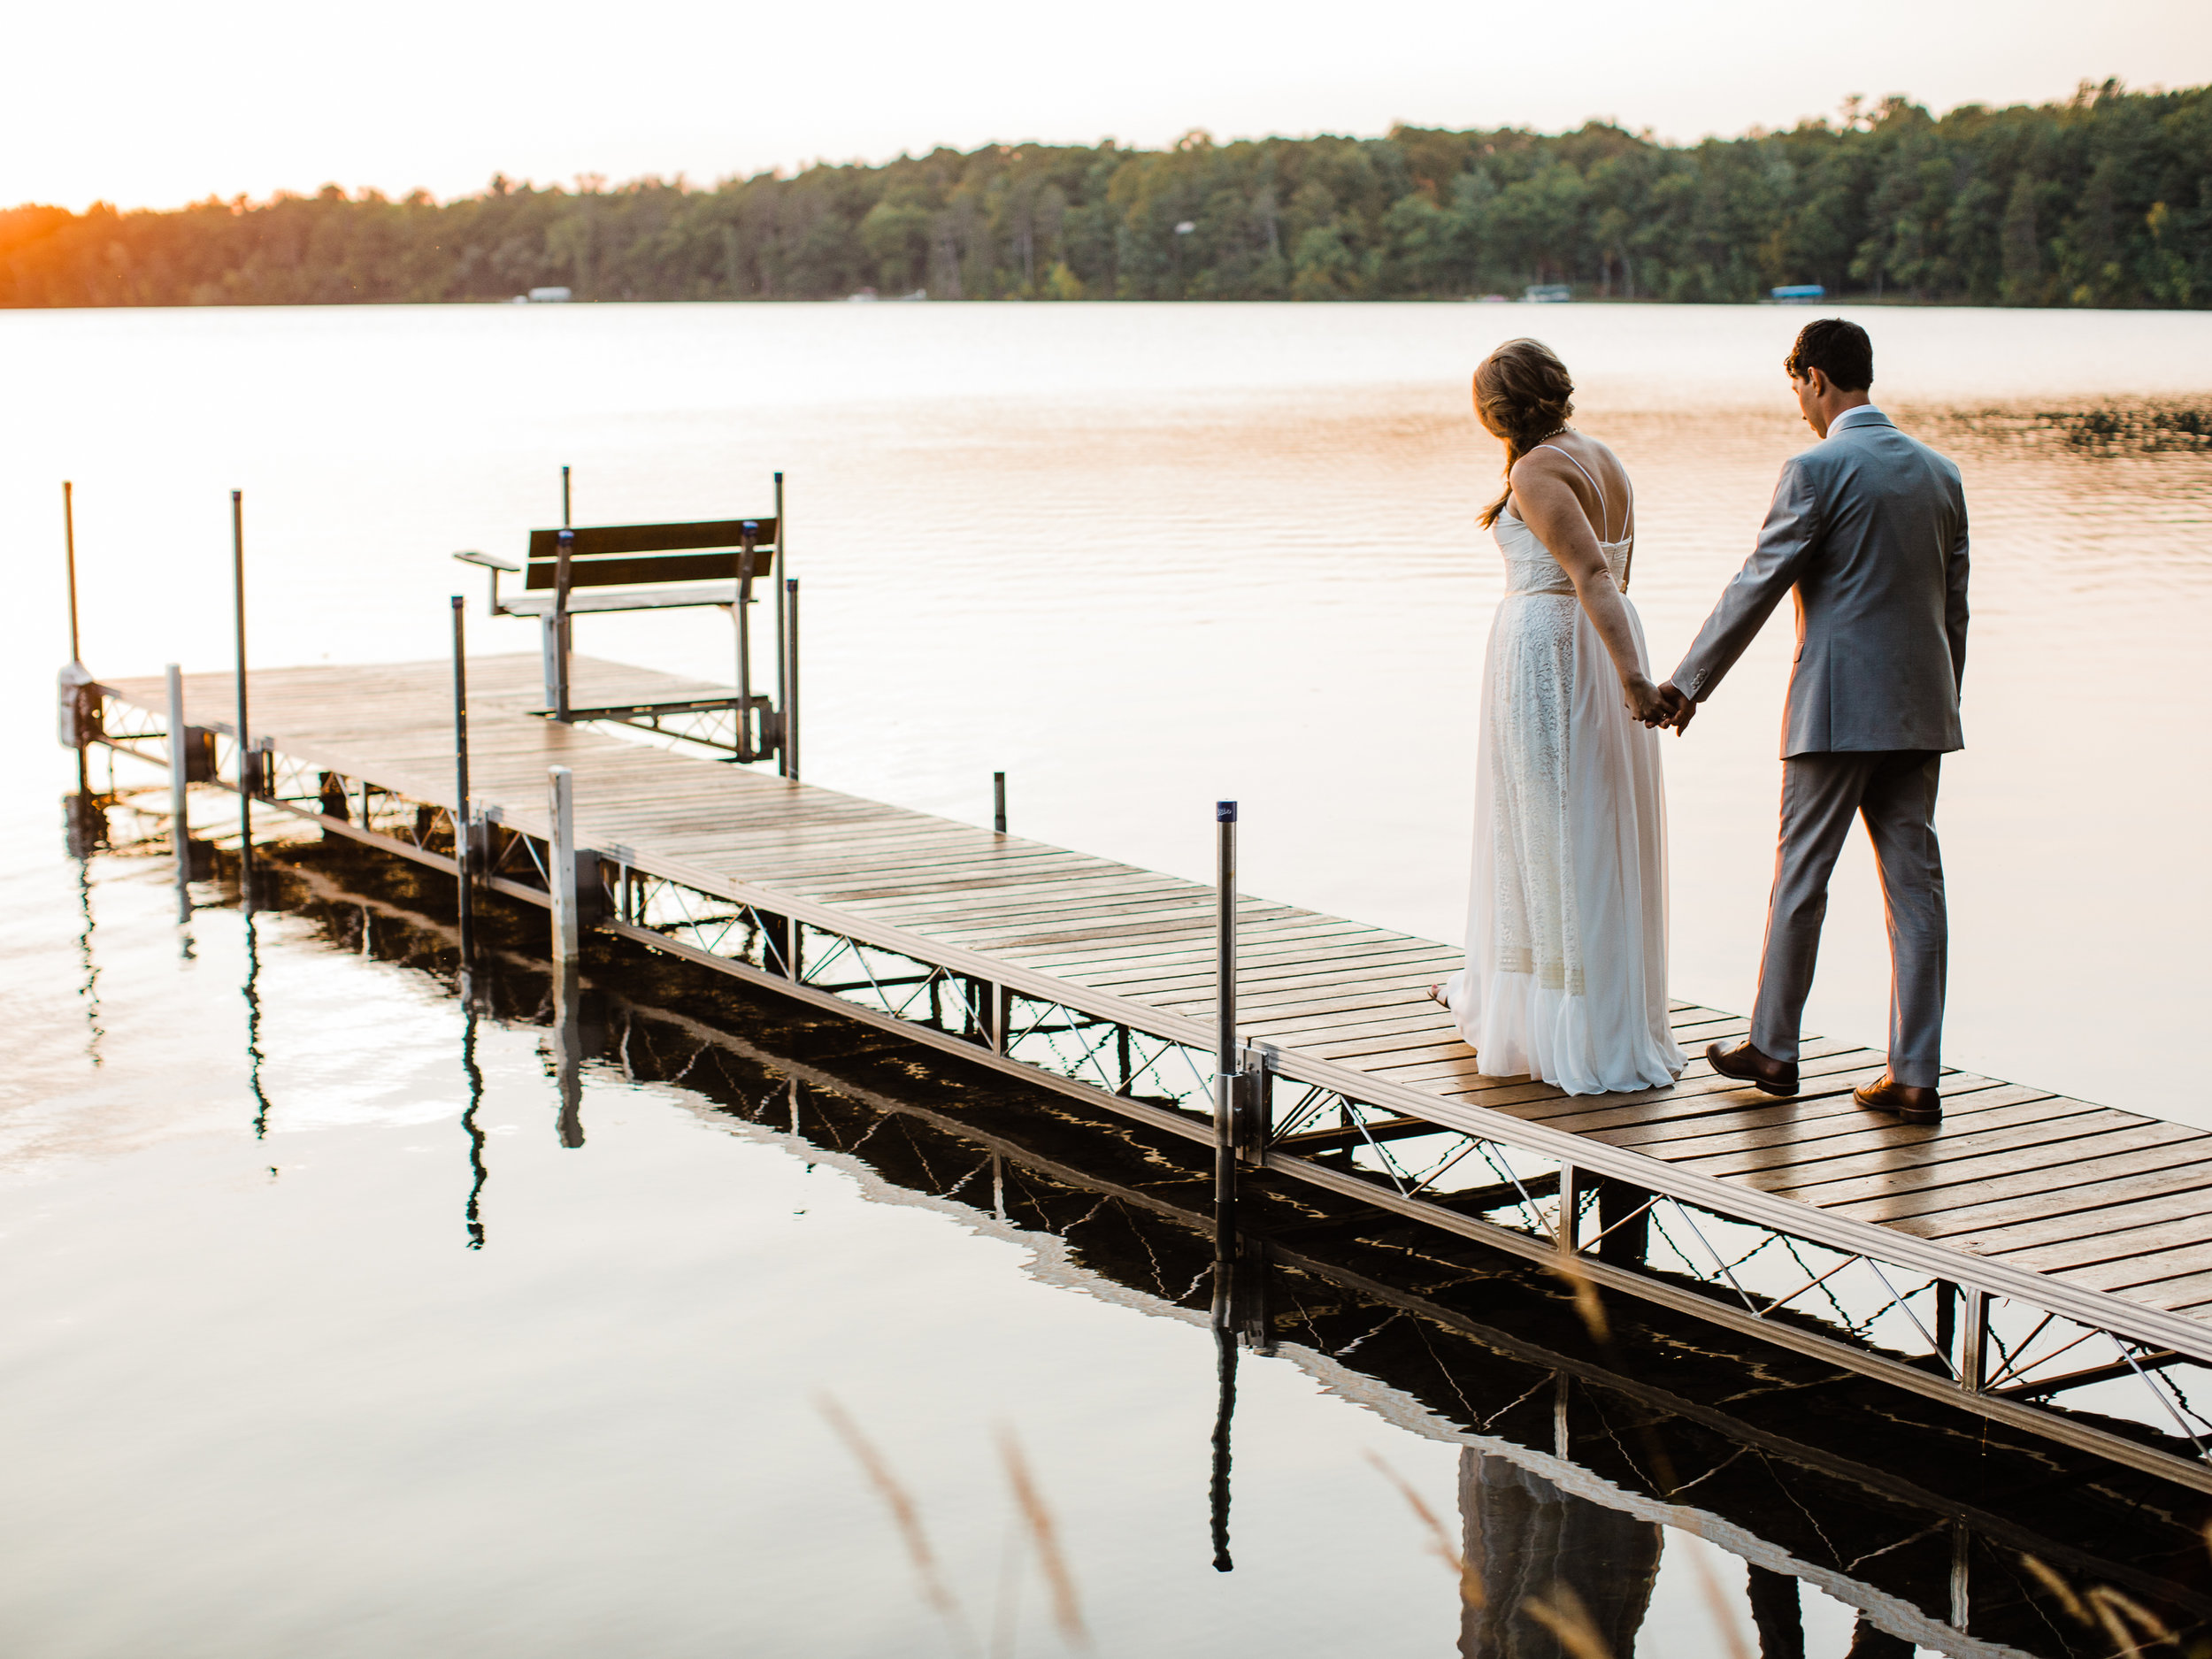 Sunset lakeside wedding images in Northern, MN